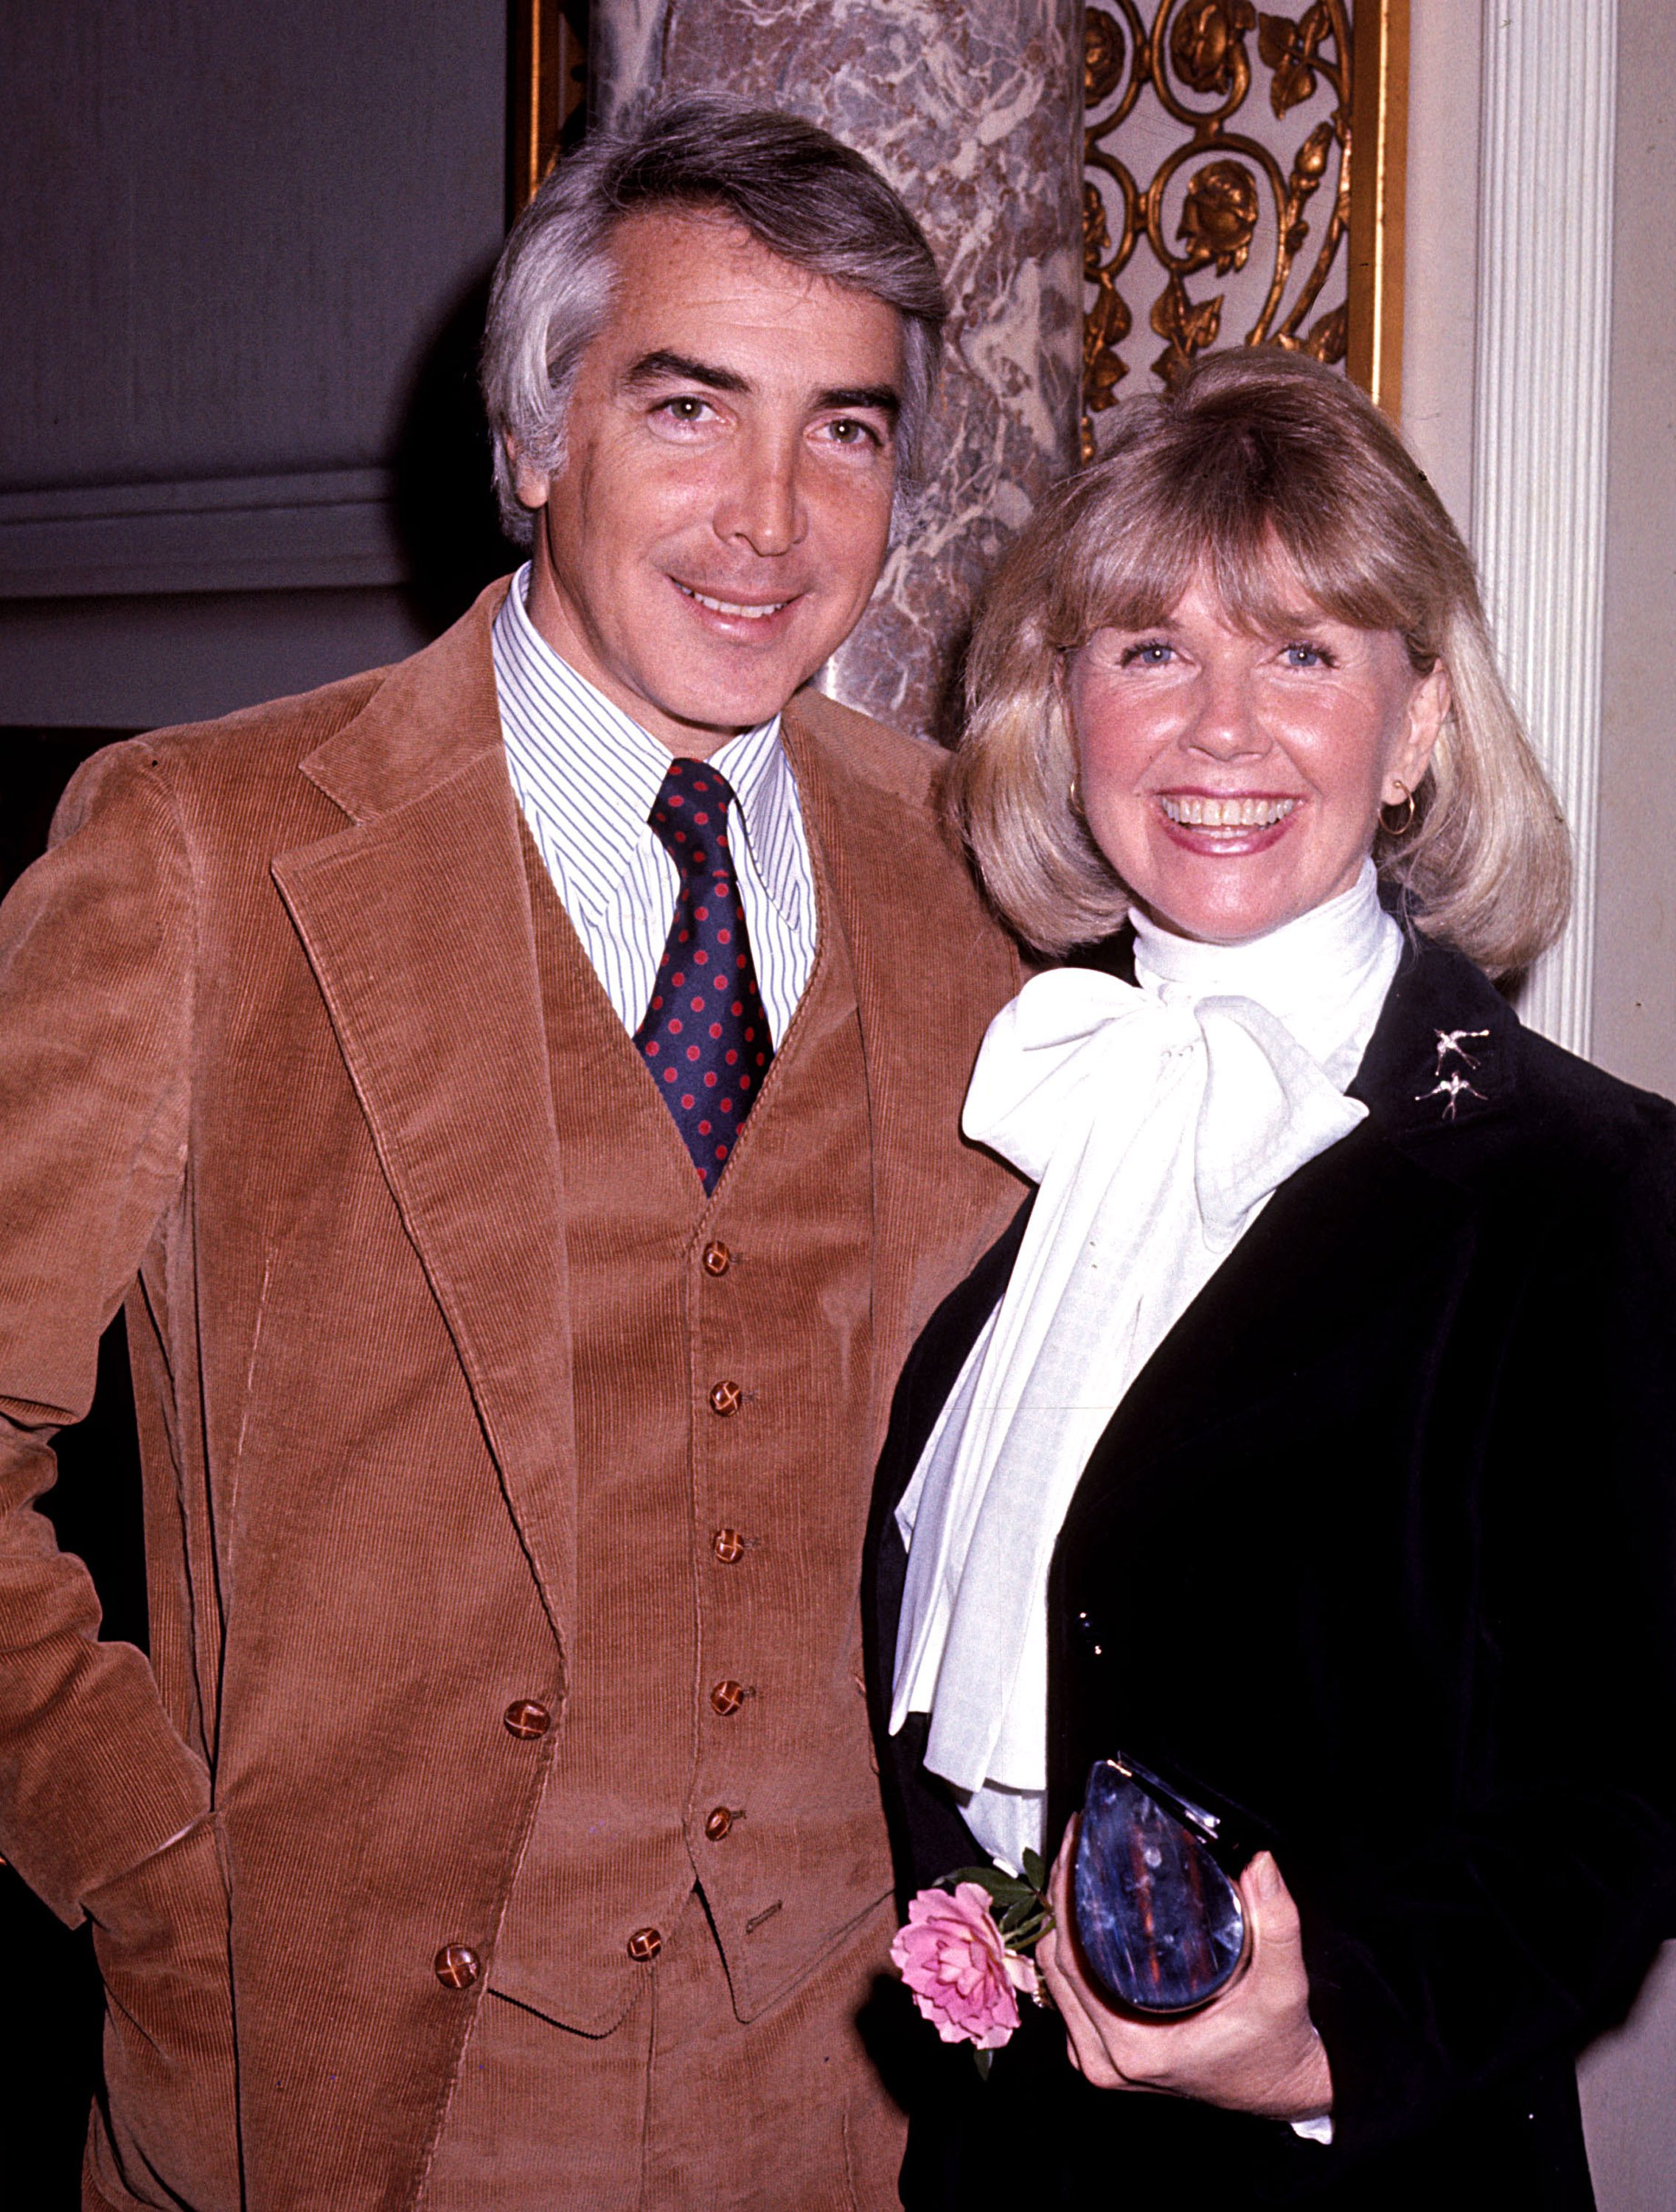 Image Credits: Getty Images / Tom Wargacki / WireImage | Doris Day (1922 - 2019) and husband Barry Comden at the Pierre Hotel.